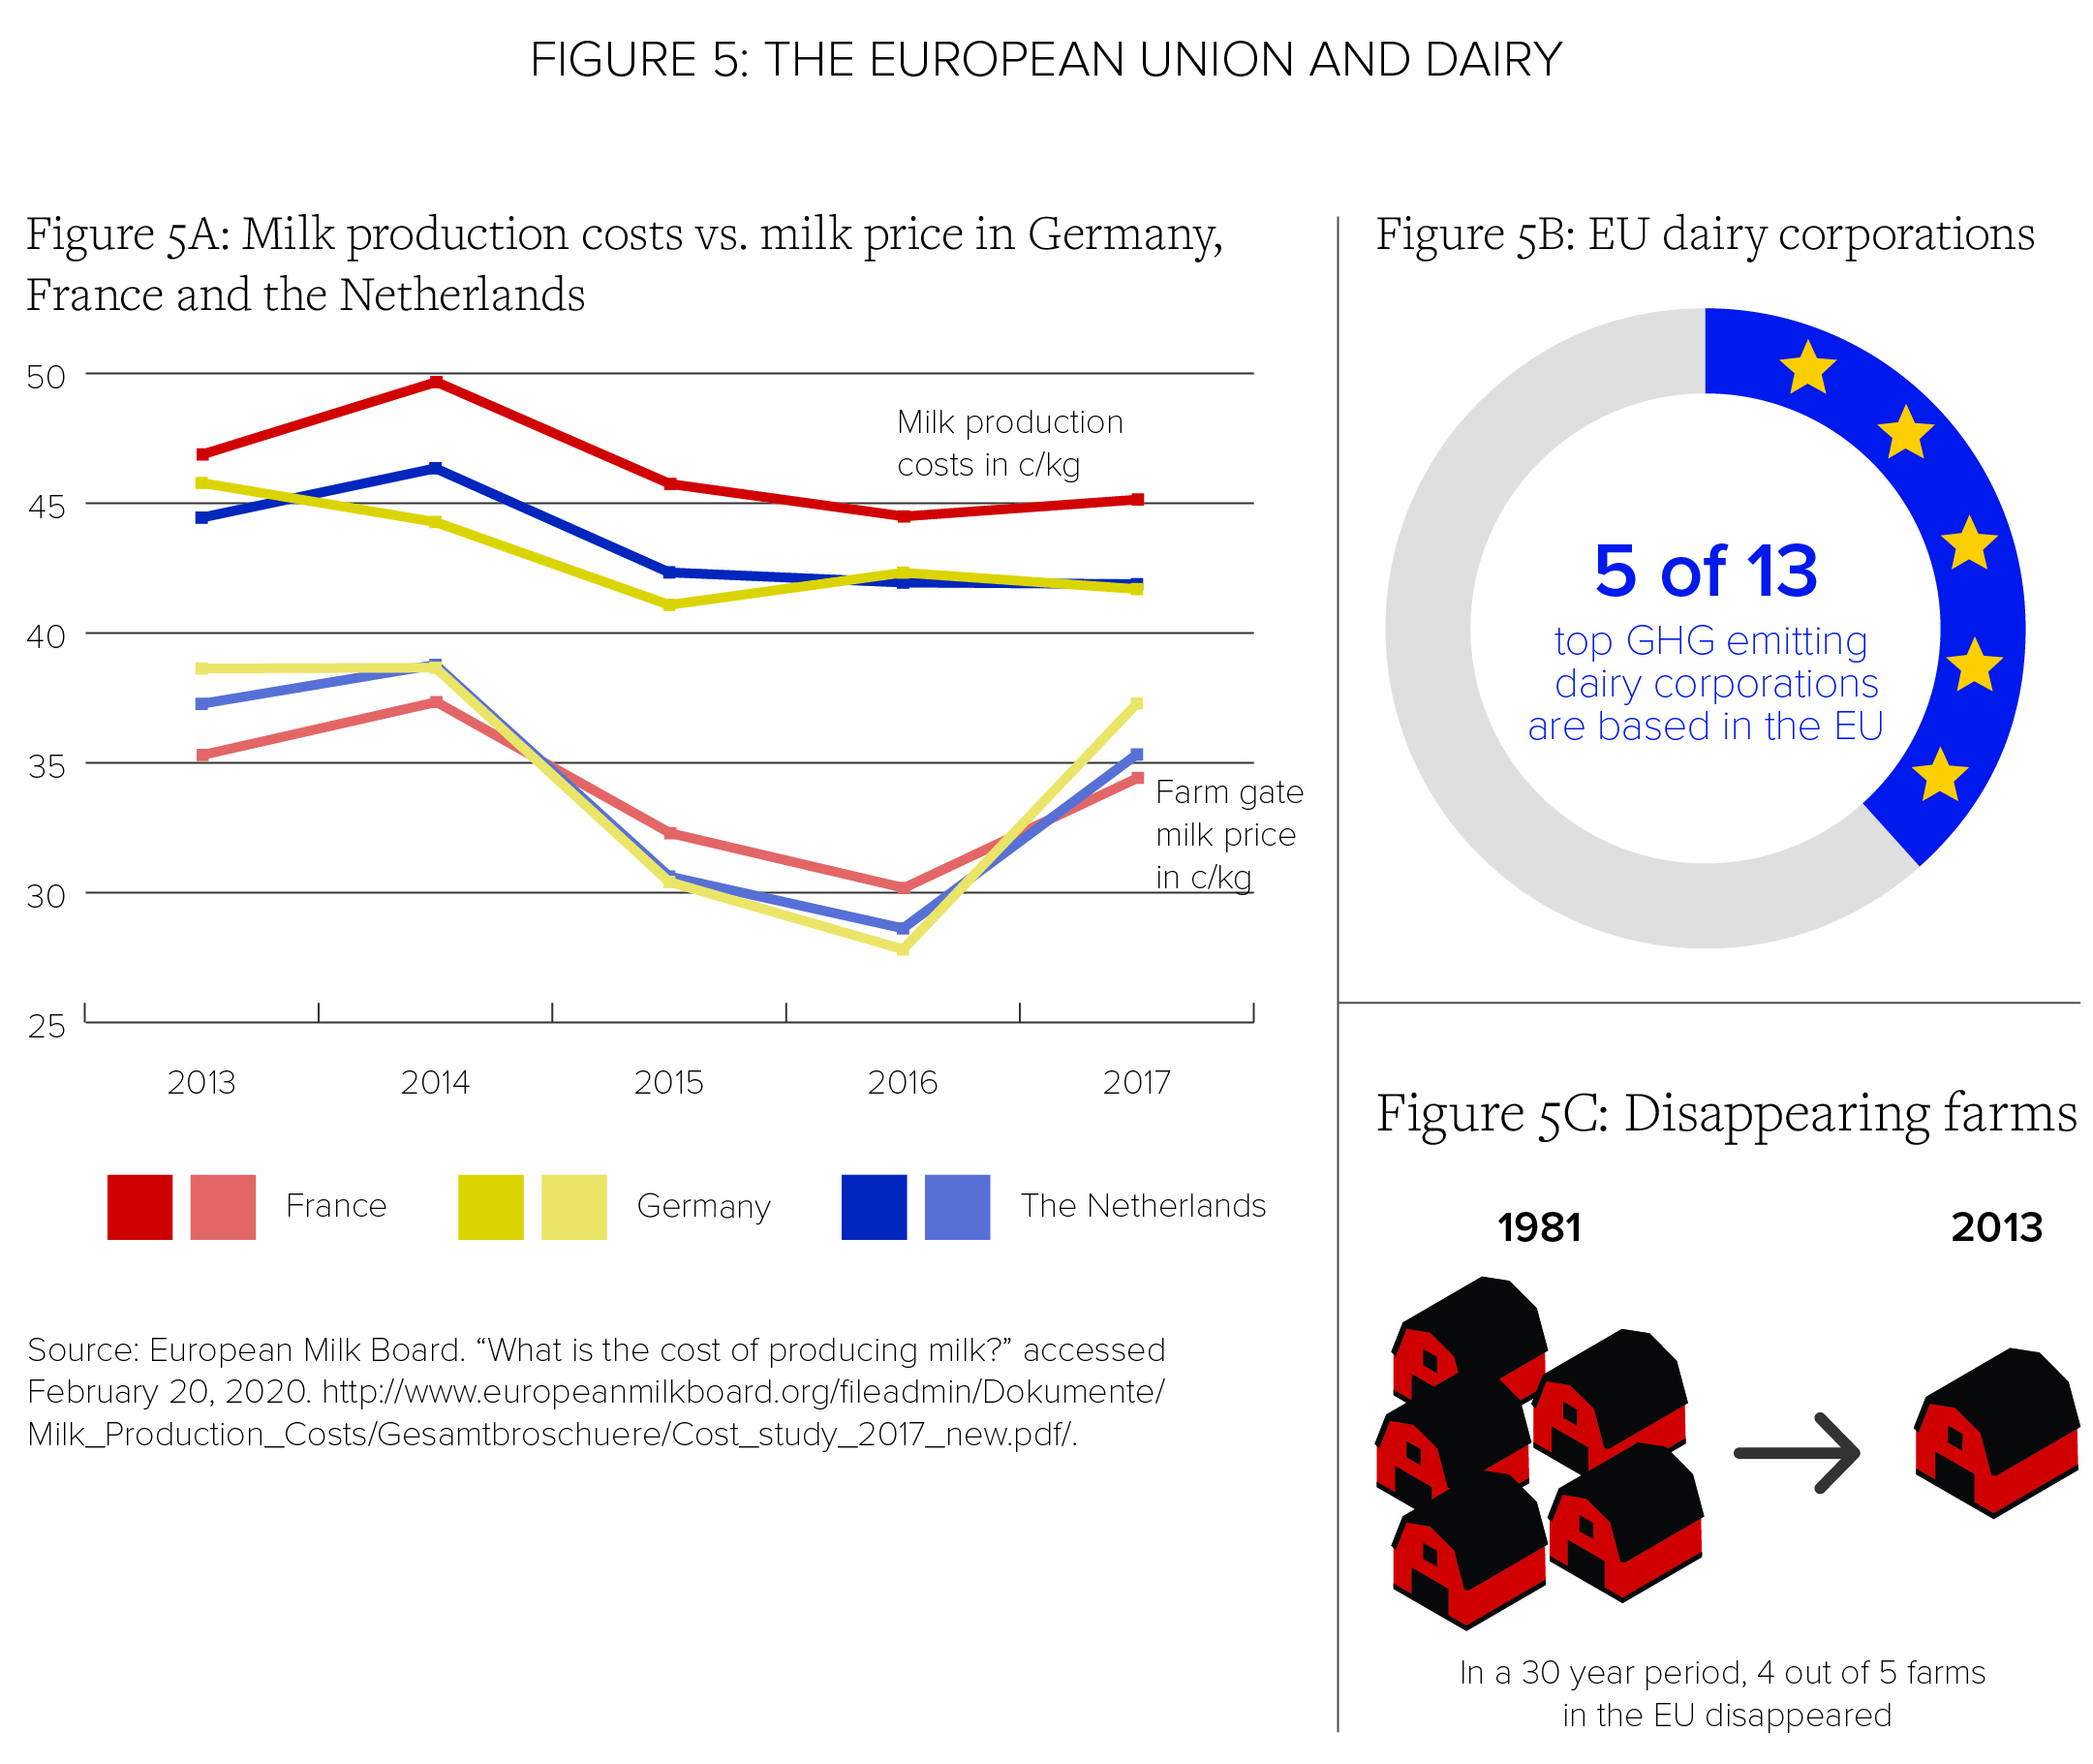 Figure 5: The European Union and Dairy